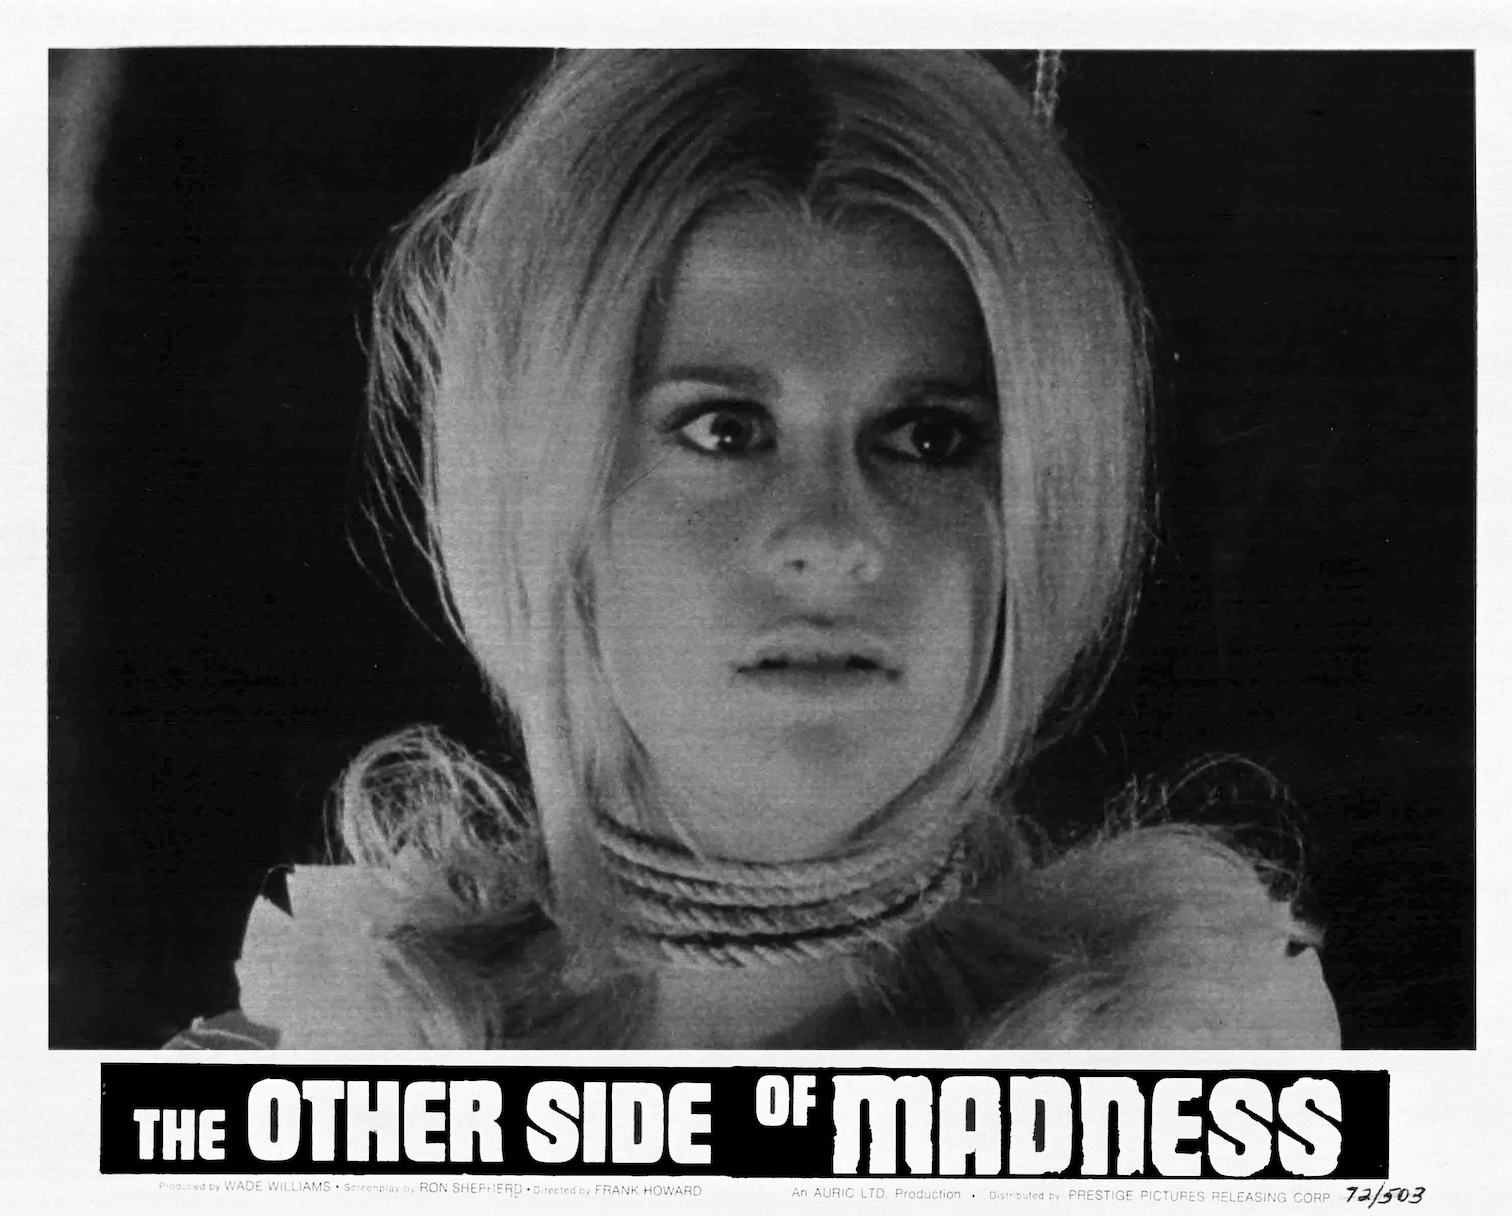 50th Anniversary Re-release of THE OTHER SIDE OF MADNESS from The Film Detective Available on Blu-ray & DVD (USA / 10 November)